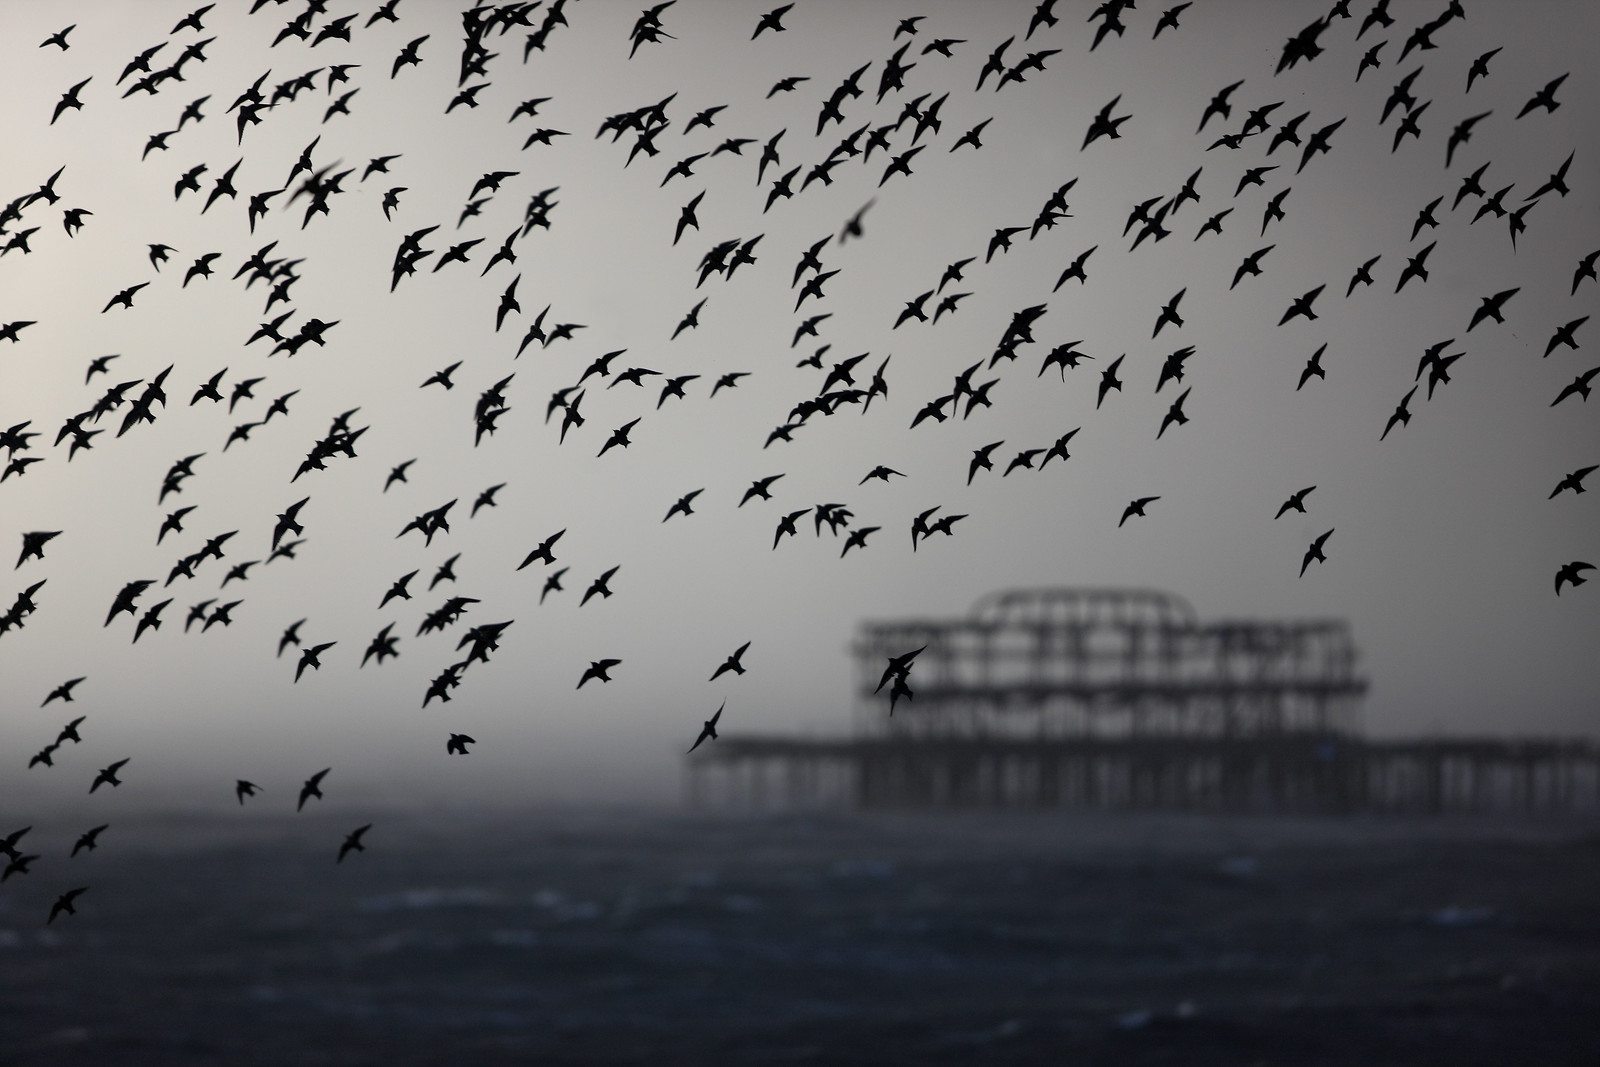 Starling Murmuration and West Pier, in a Hail Storm